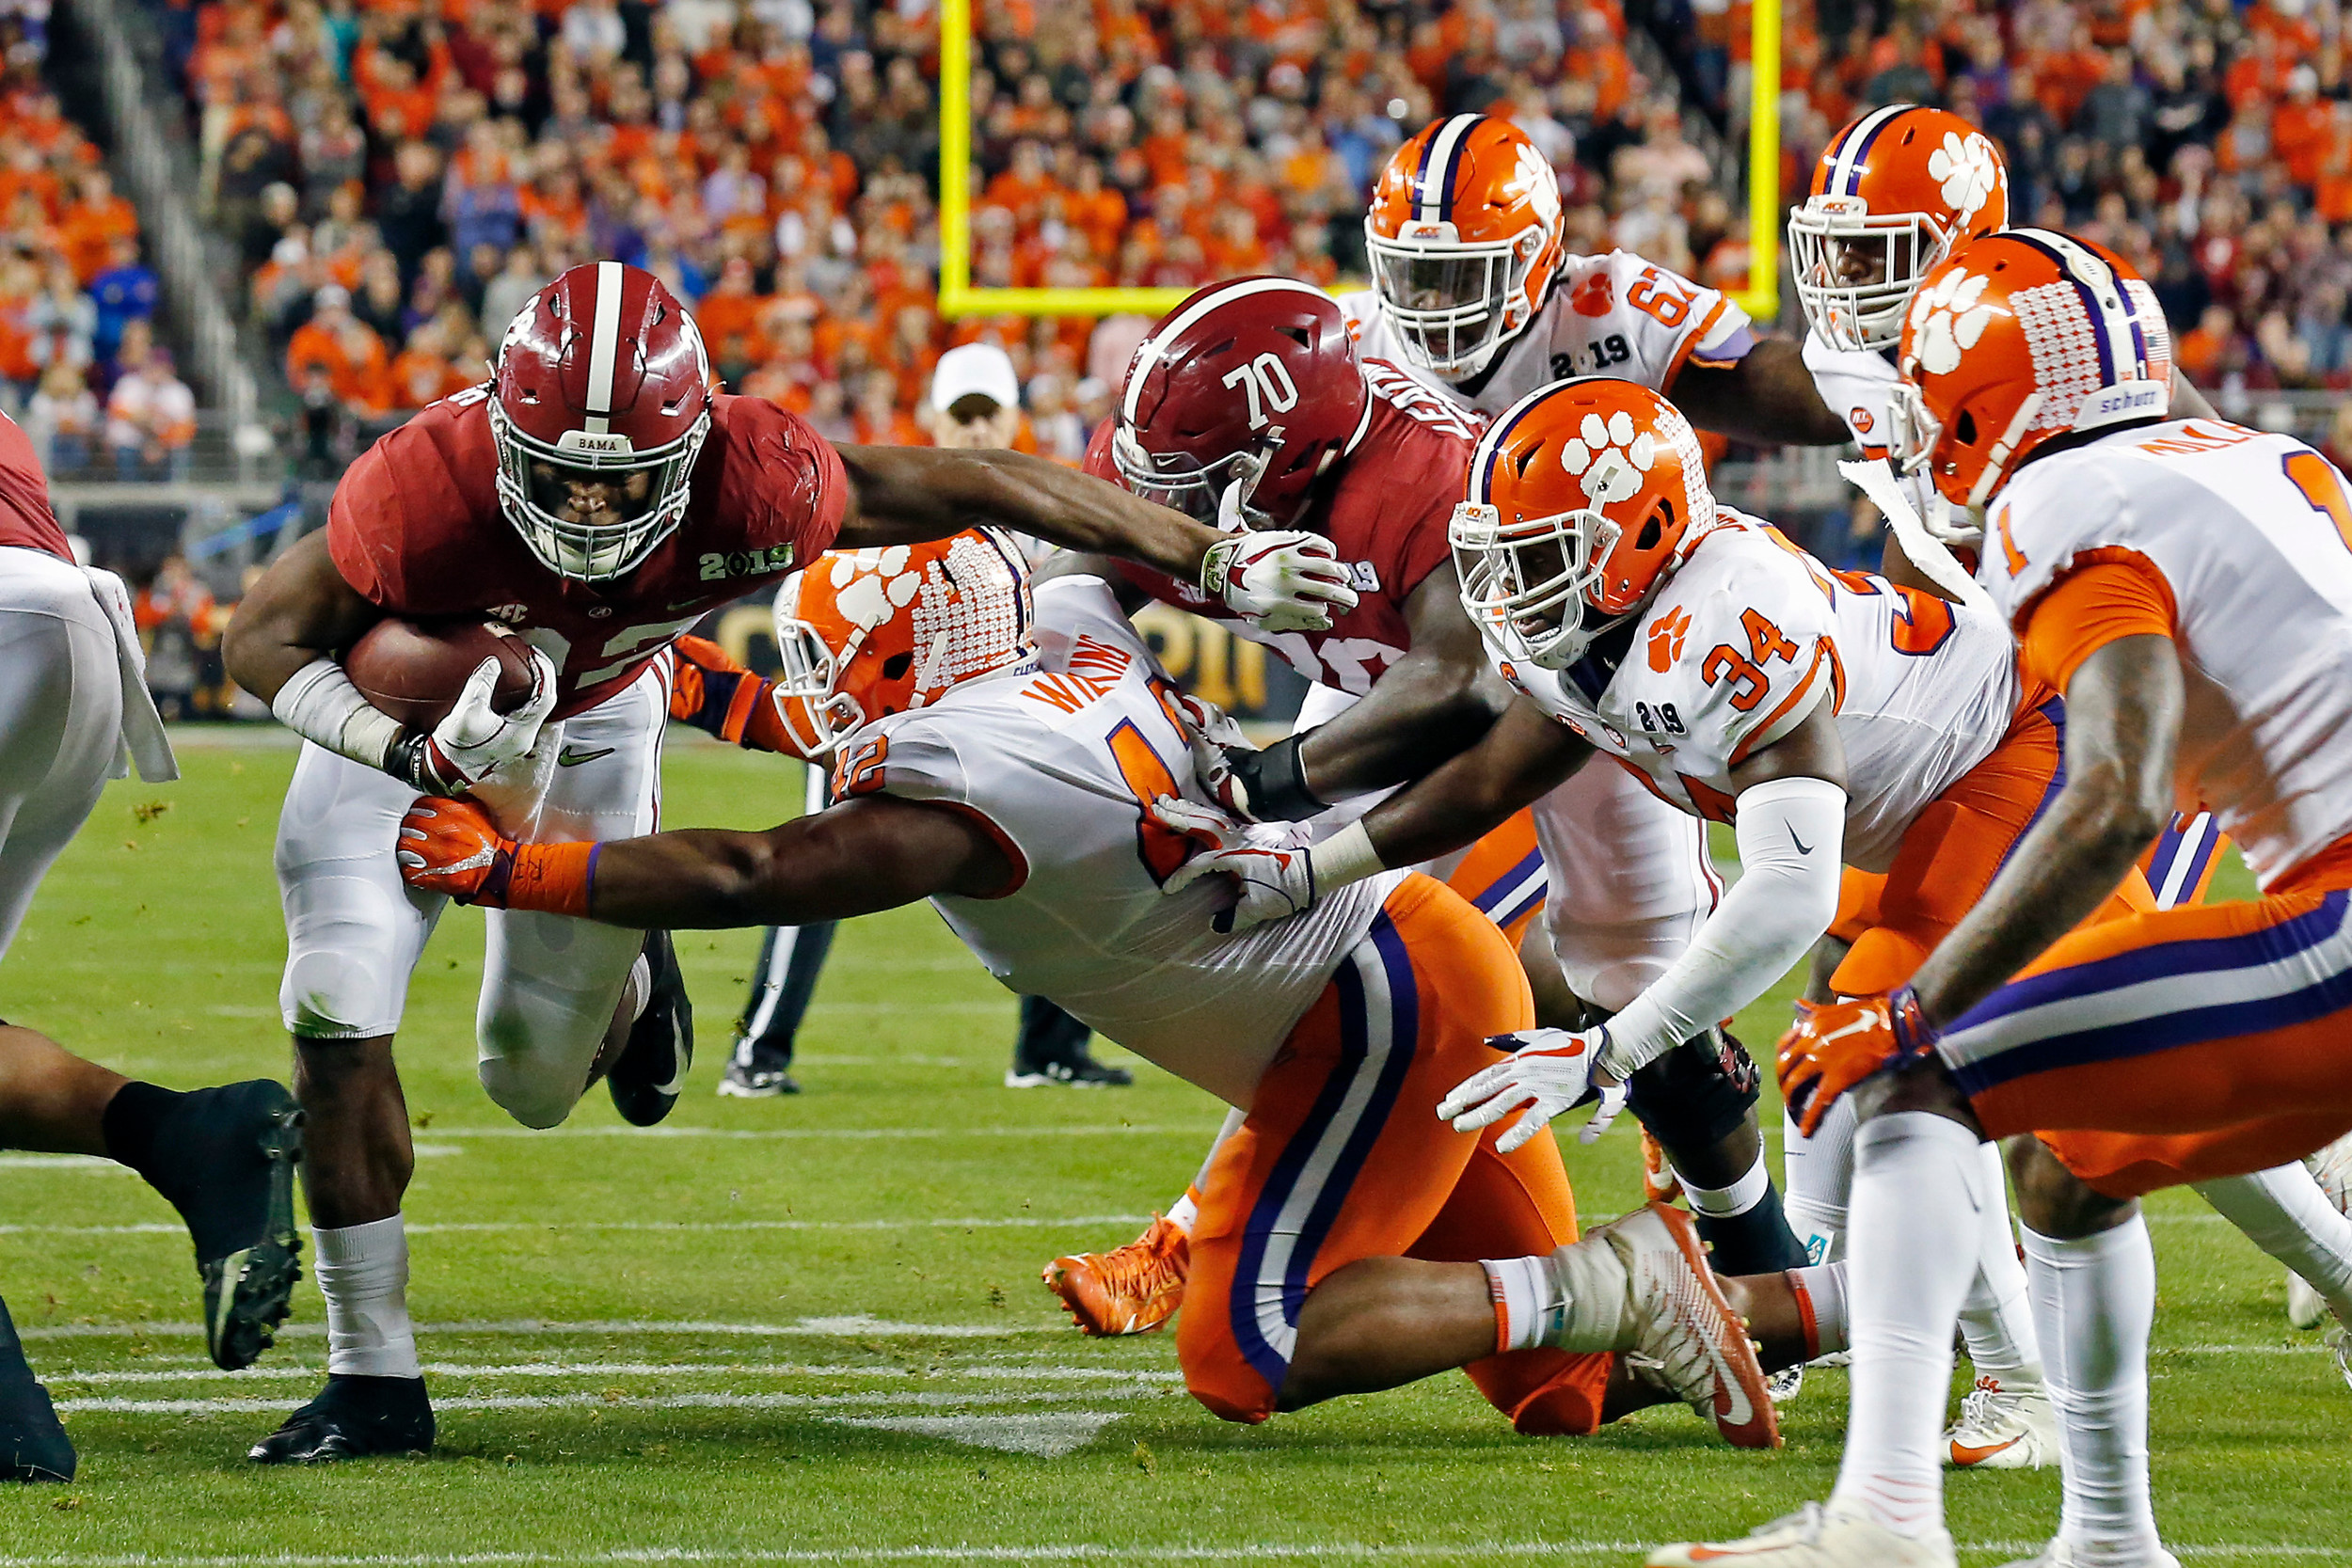 Photo Gallery Cfp Championship No 2 Clemson 44 No 1